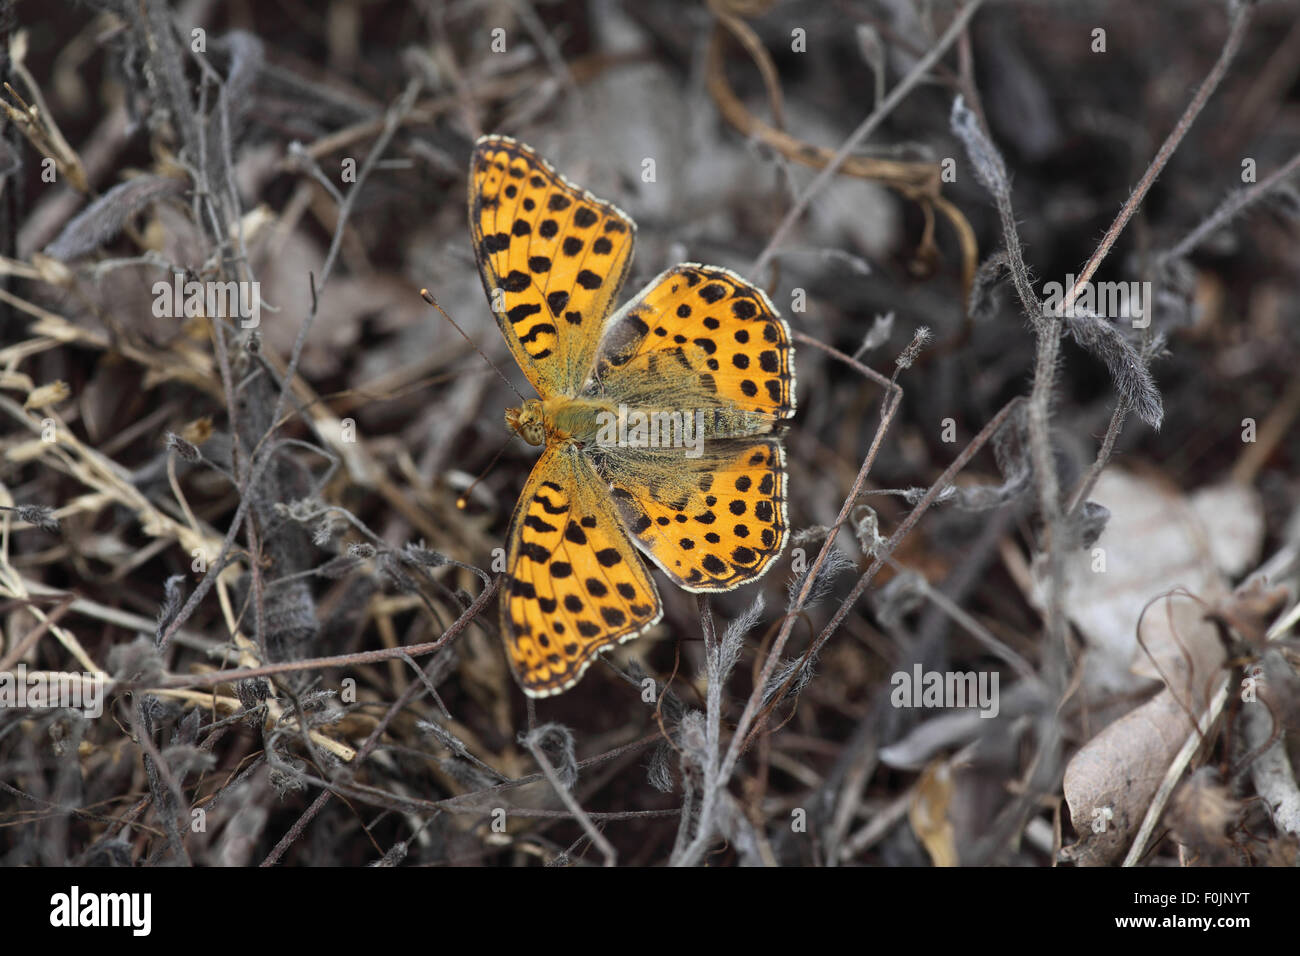 Queen of spain fritillary Issoria lathonia  at rest amongst plant stalks Stock Photo